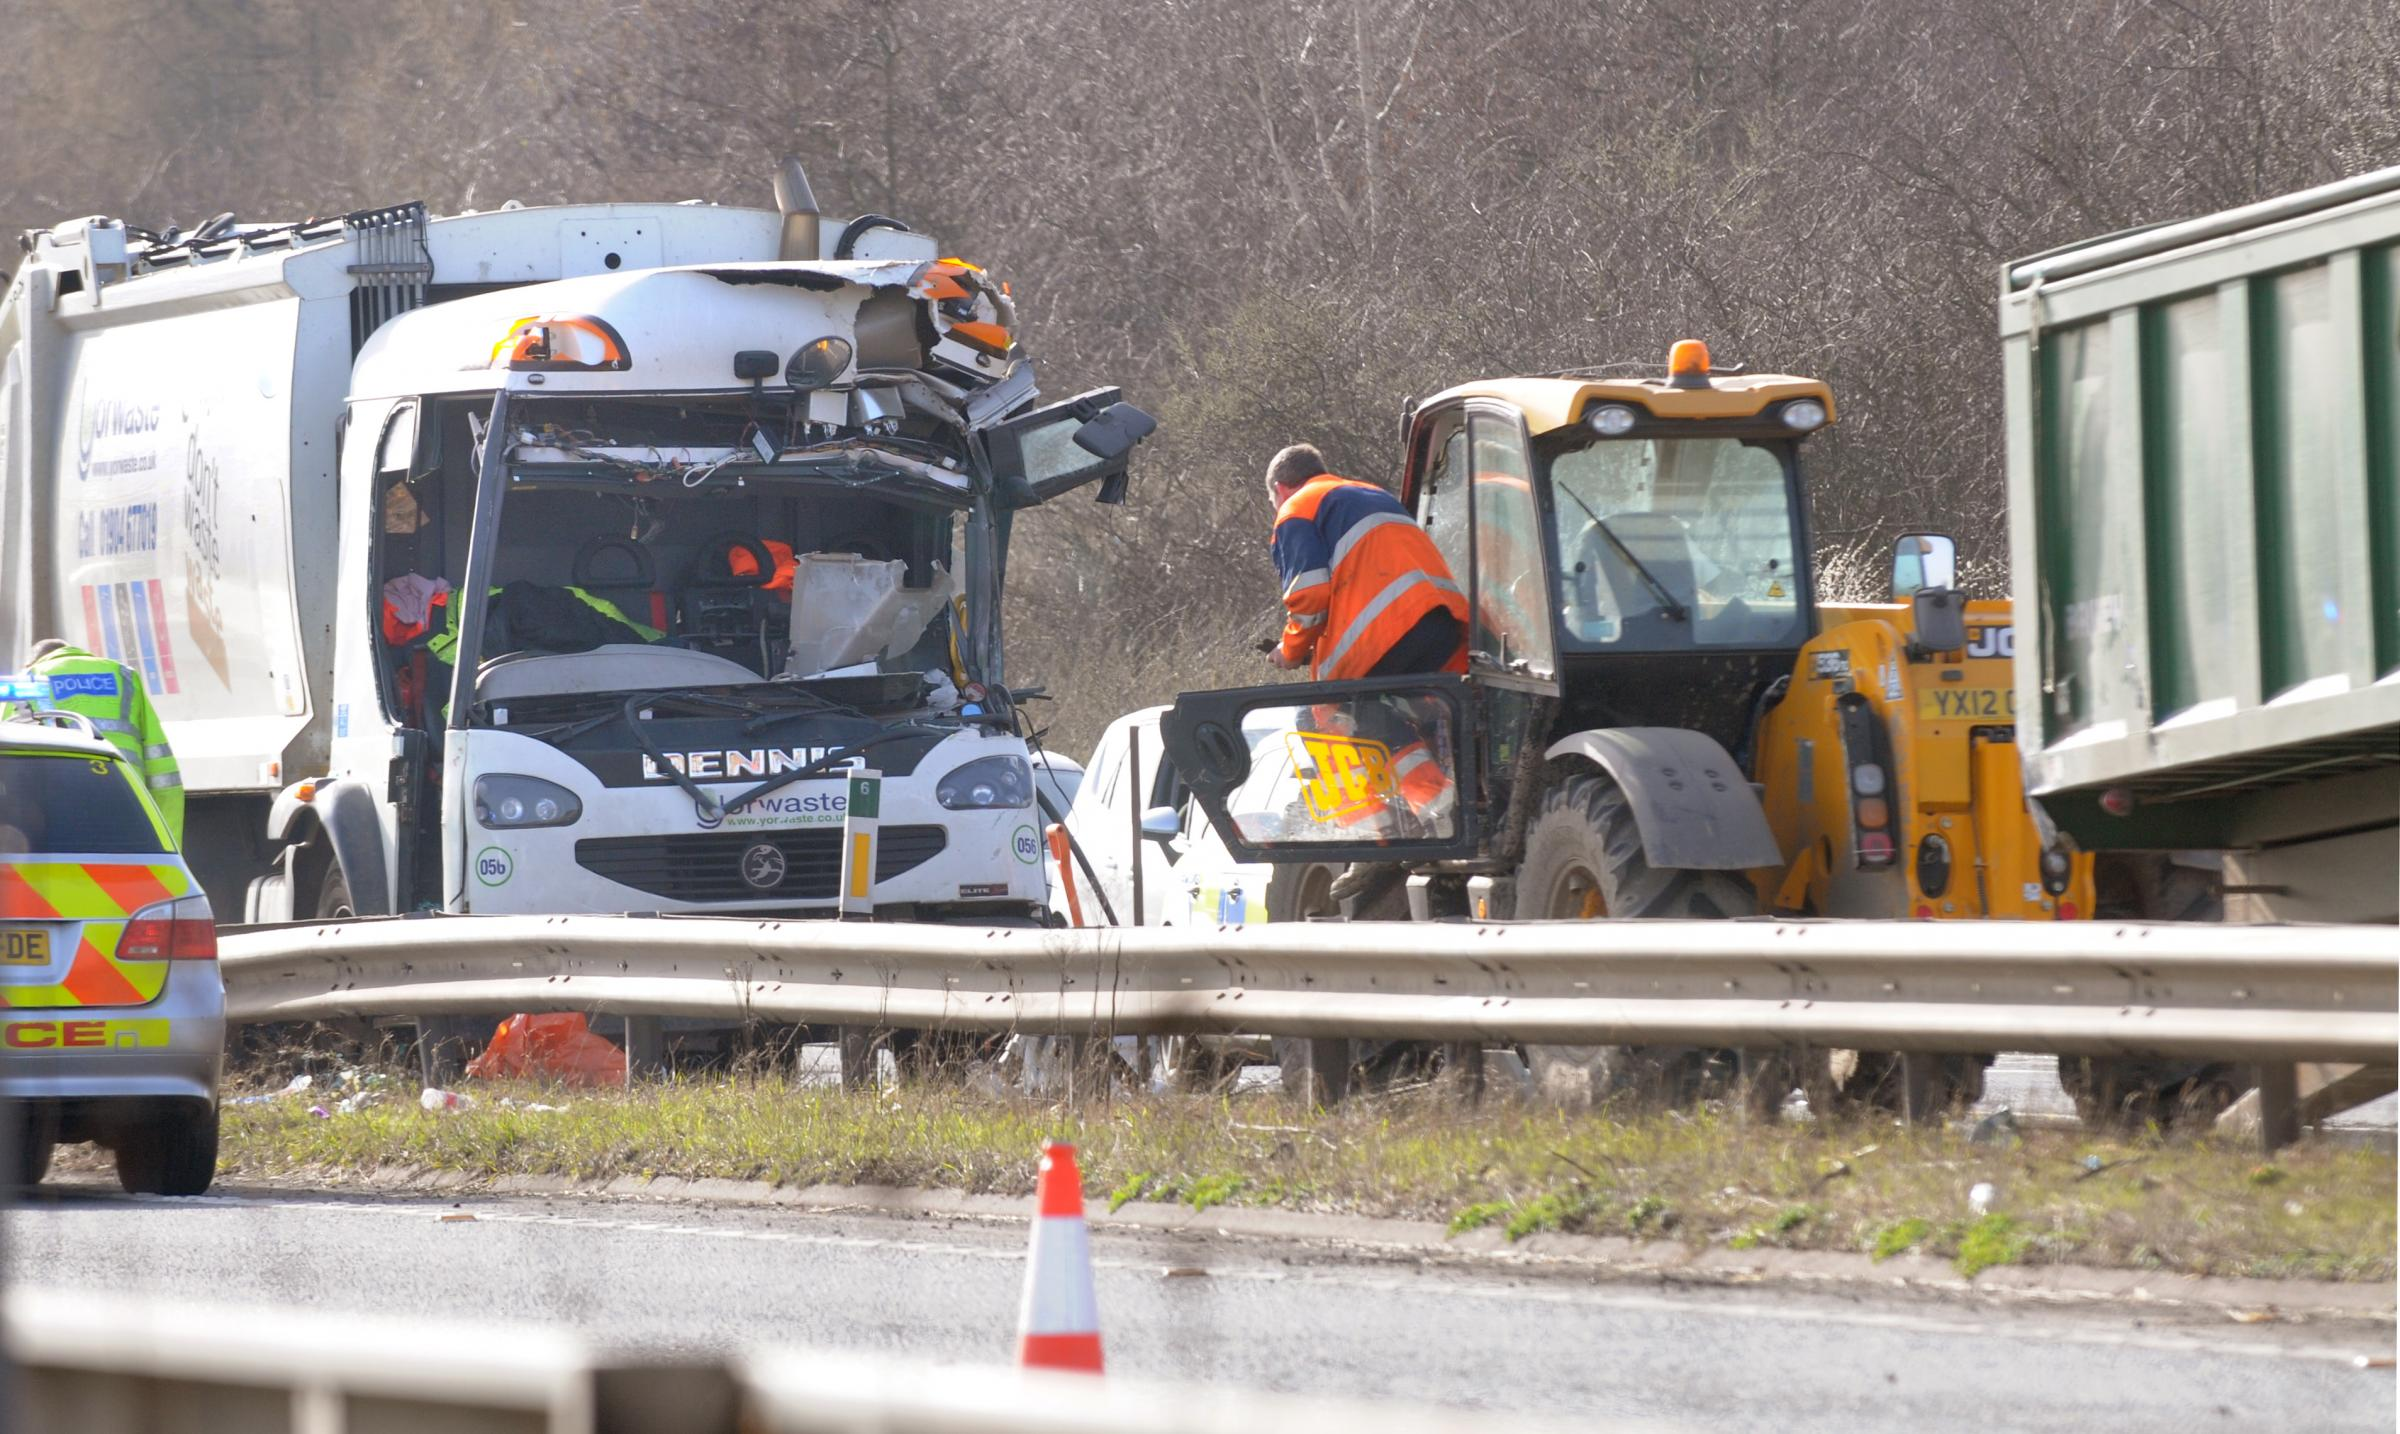 A64 accidents prompt call for safety improvements